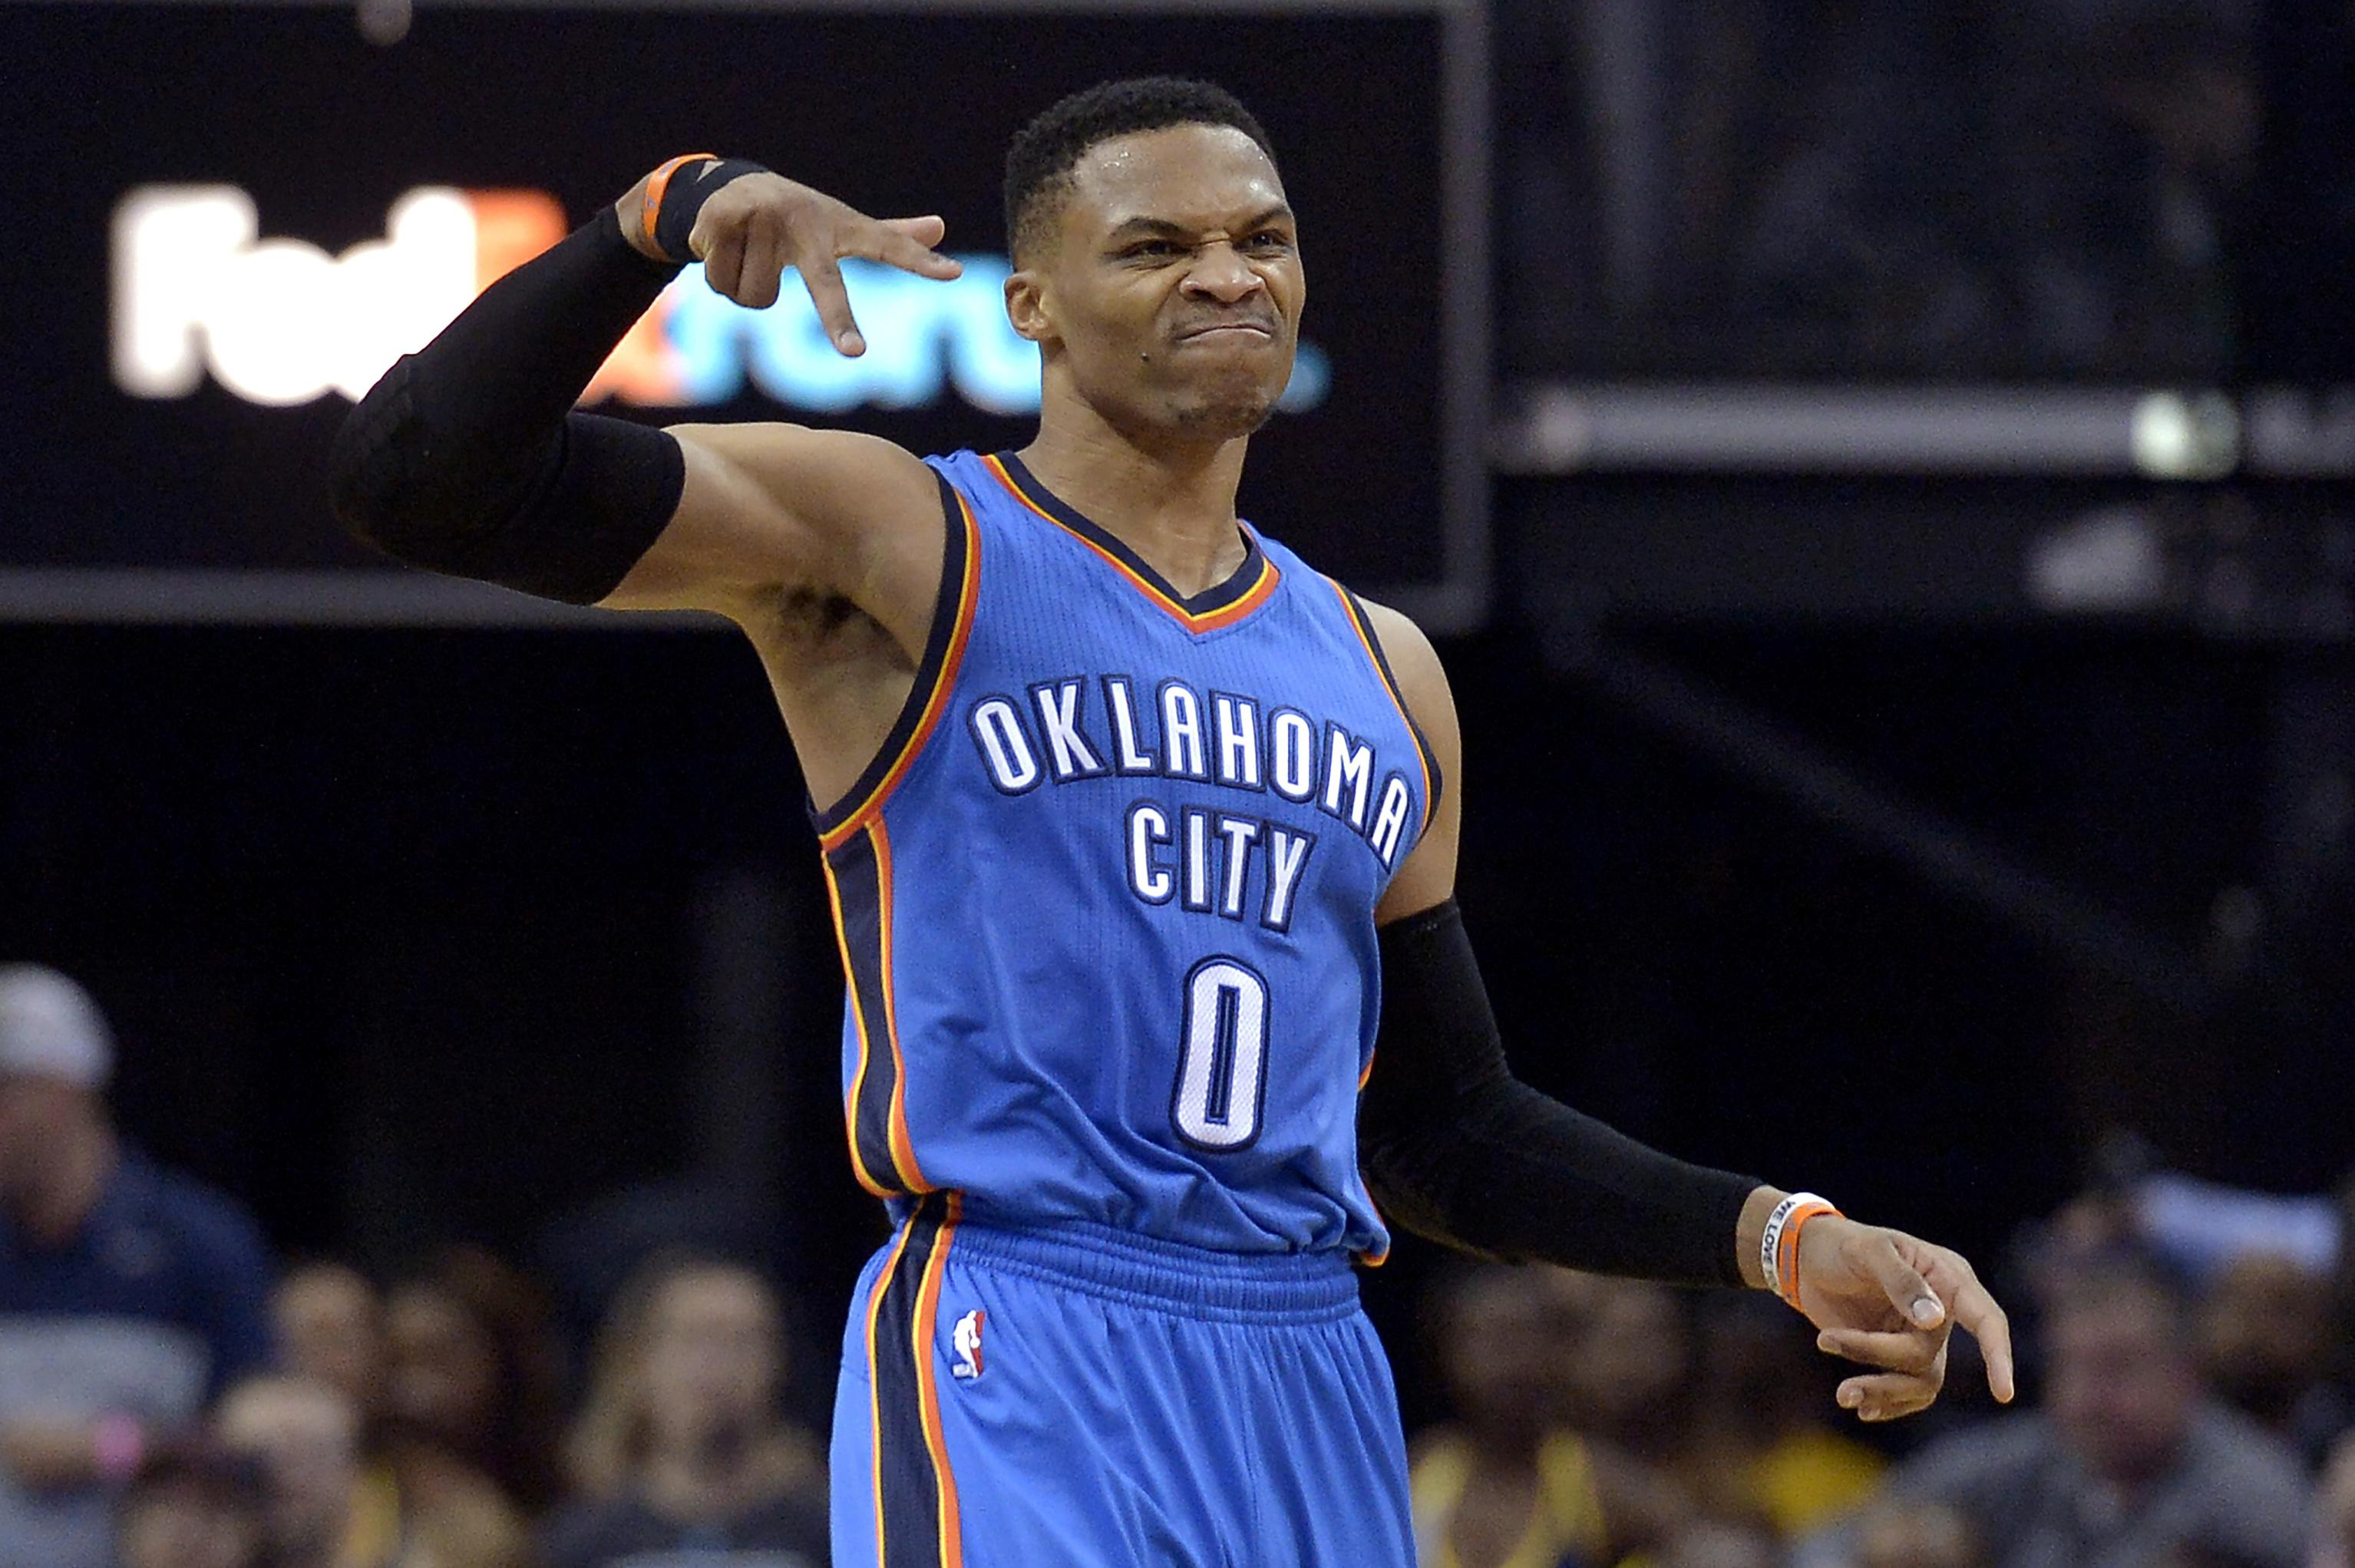 825b5676198b Oklahoma City Thunder guard Russell Westbrook (0) gestures after scoring a  3-pointer